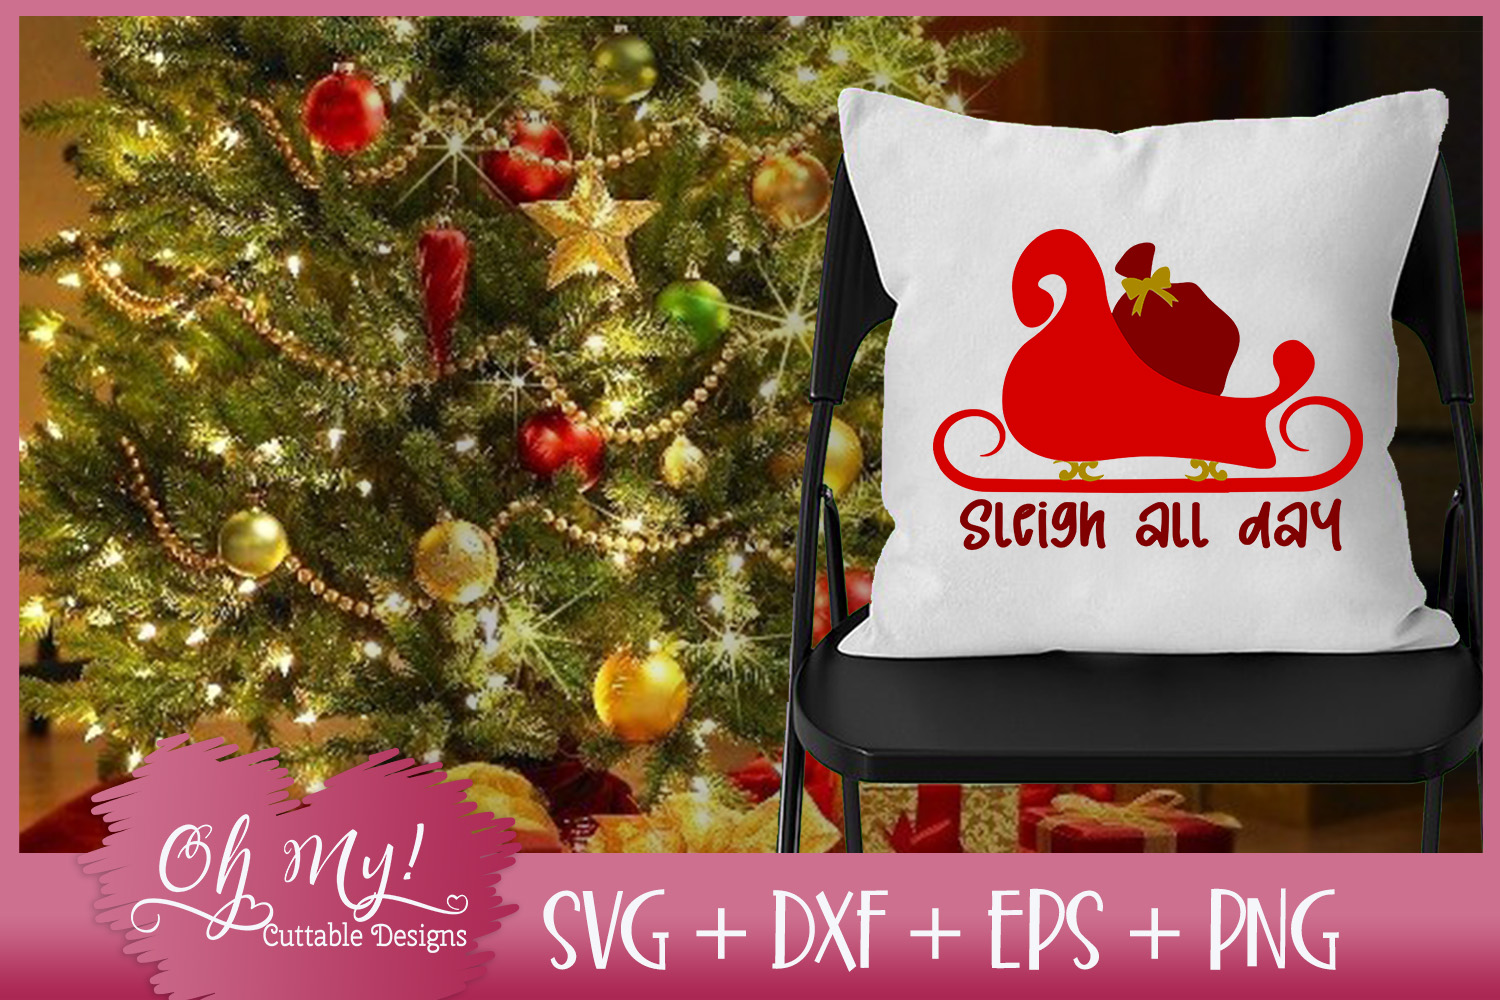 Sleigh All Day - SVG DXF EPS PNG Cutting File example image 4